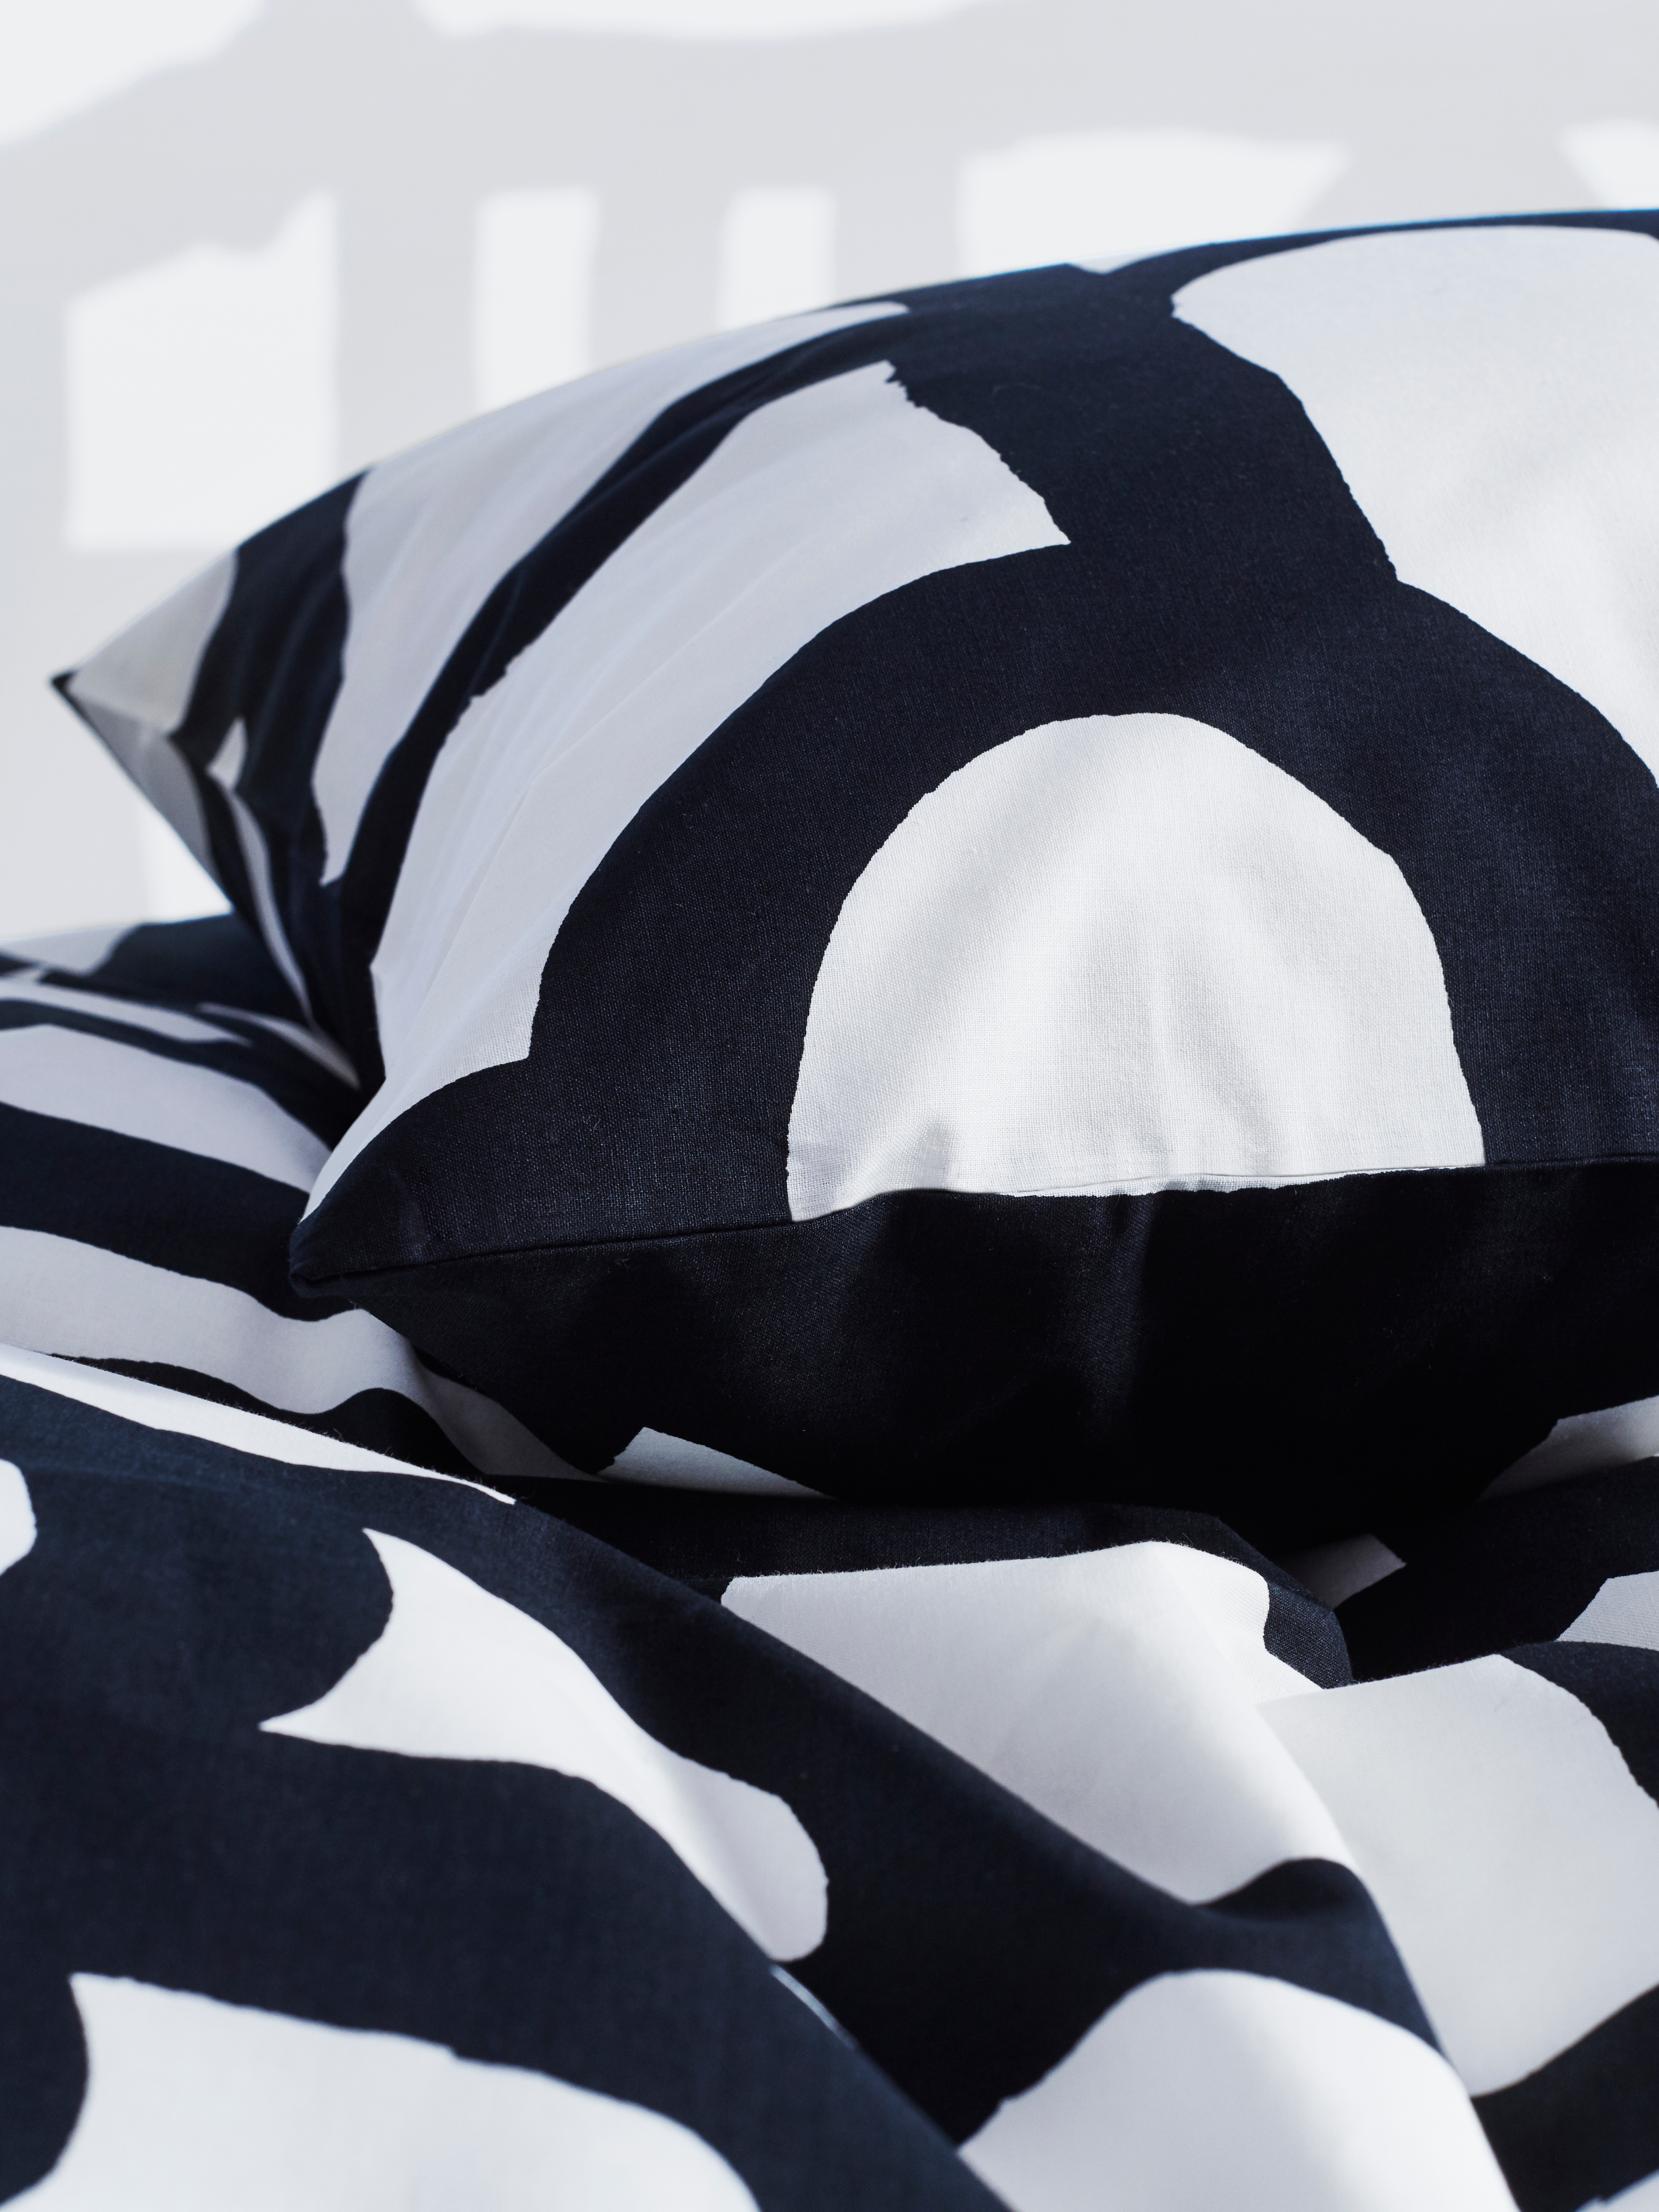 SKUGGBRÄCKA quilt cover and pillowcase in black and white against a white background.